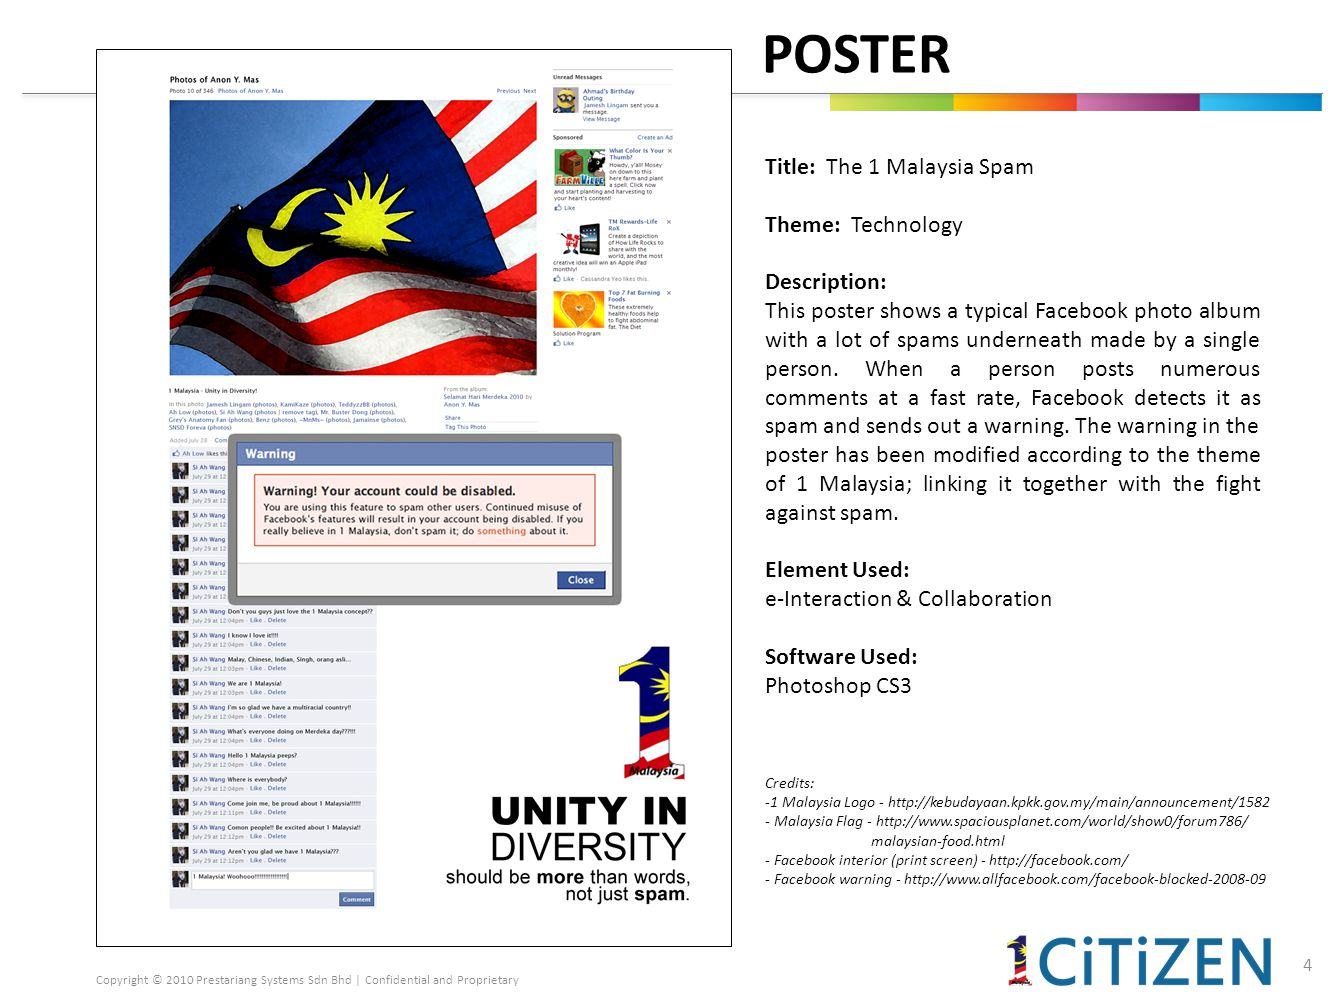 Copyright © 2010 Prestariang Systems Sdn Bhd | Confidential and Proprietary POSTER Title: The 1 Malaysia Spam Theme: Technology Description: This poster shows a typical Facebook photo album with a lot of spams underneath made by a single person.